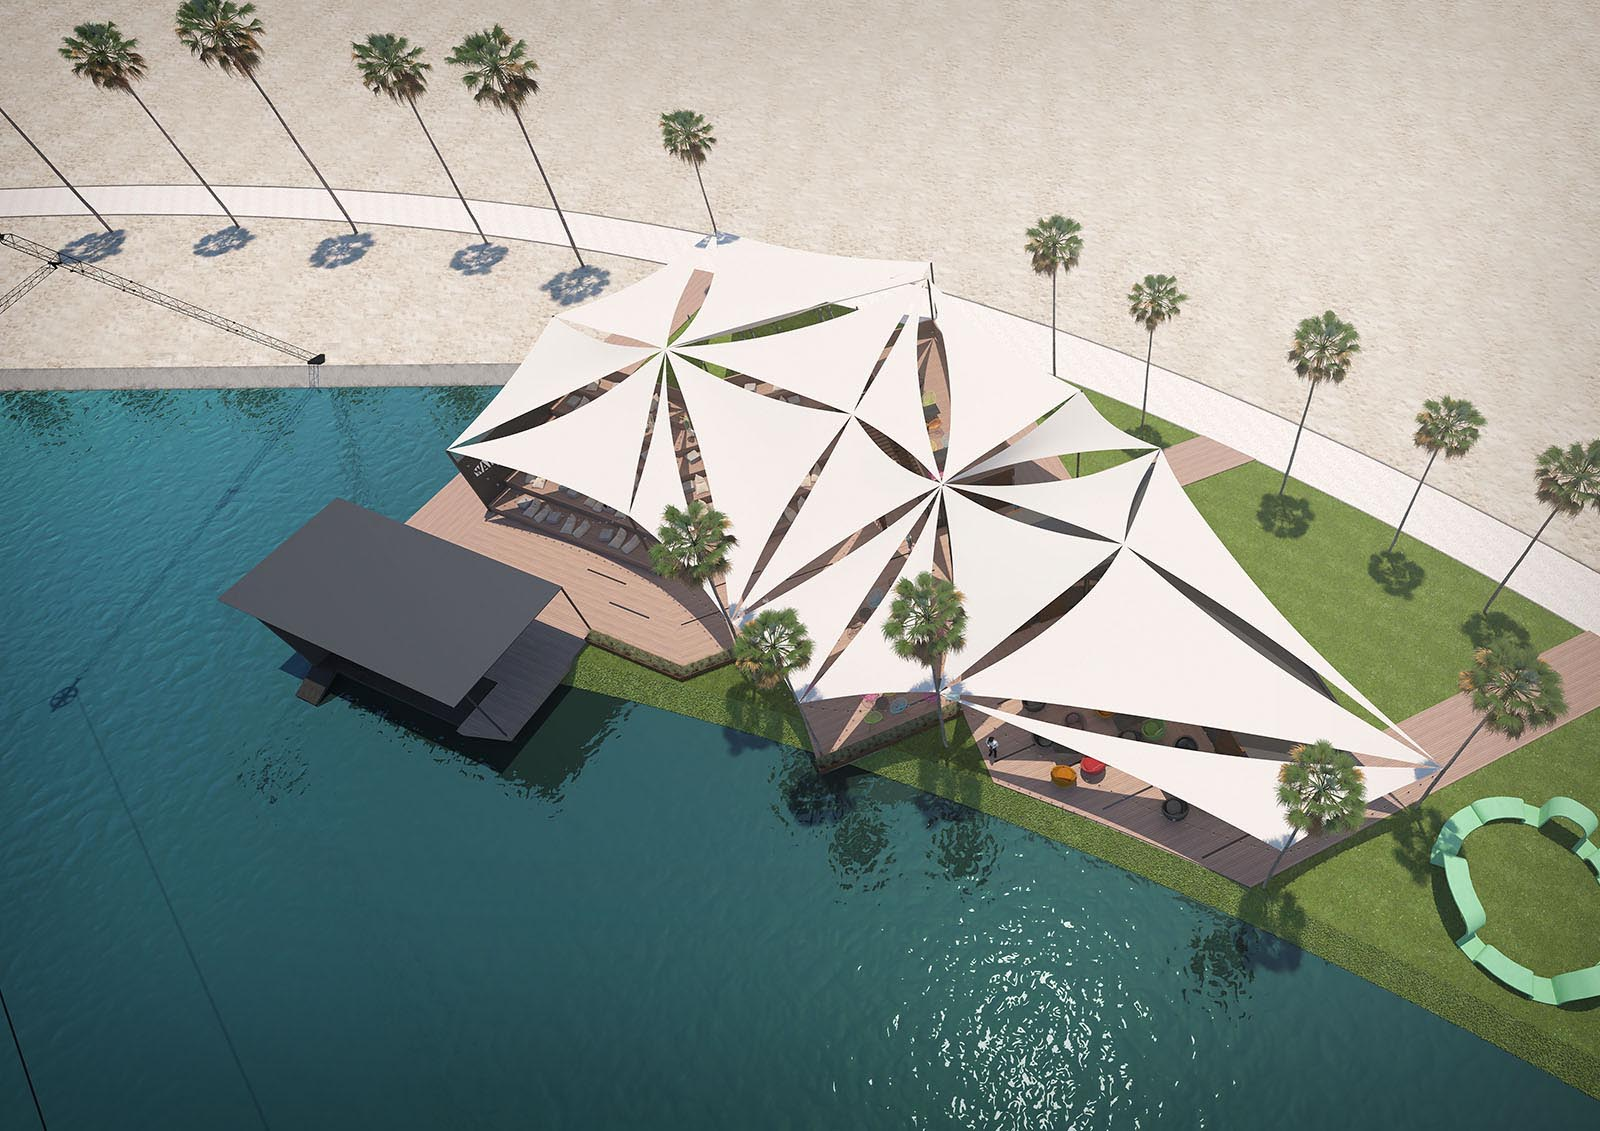 Wakeboard park visualization, Dubai